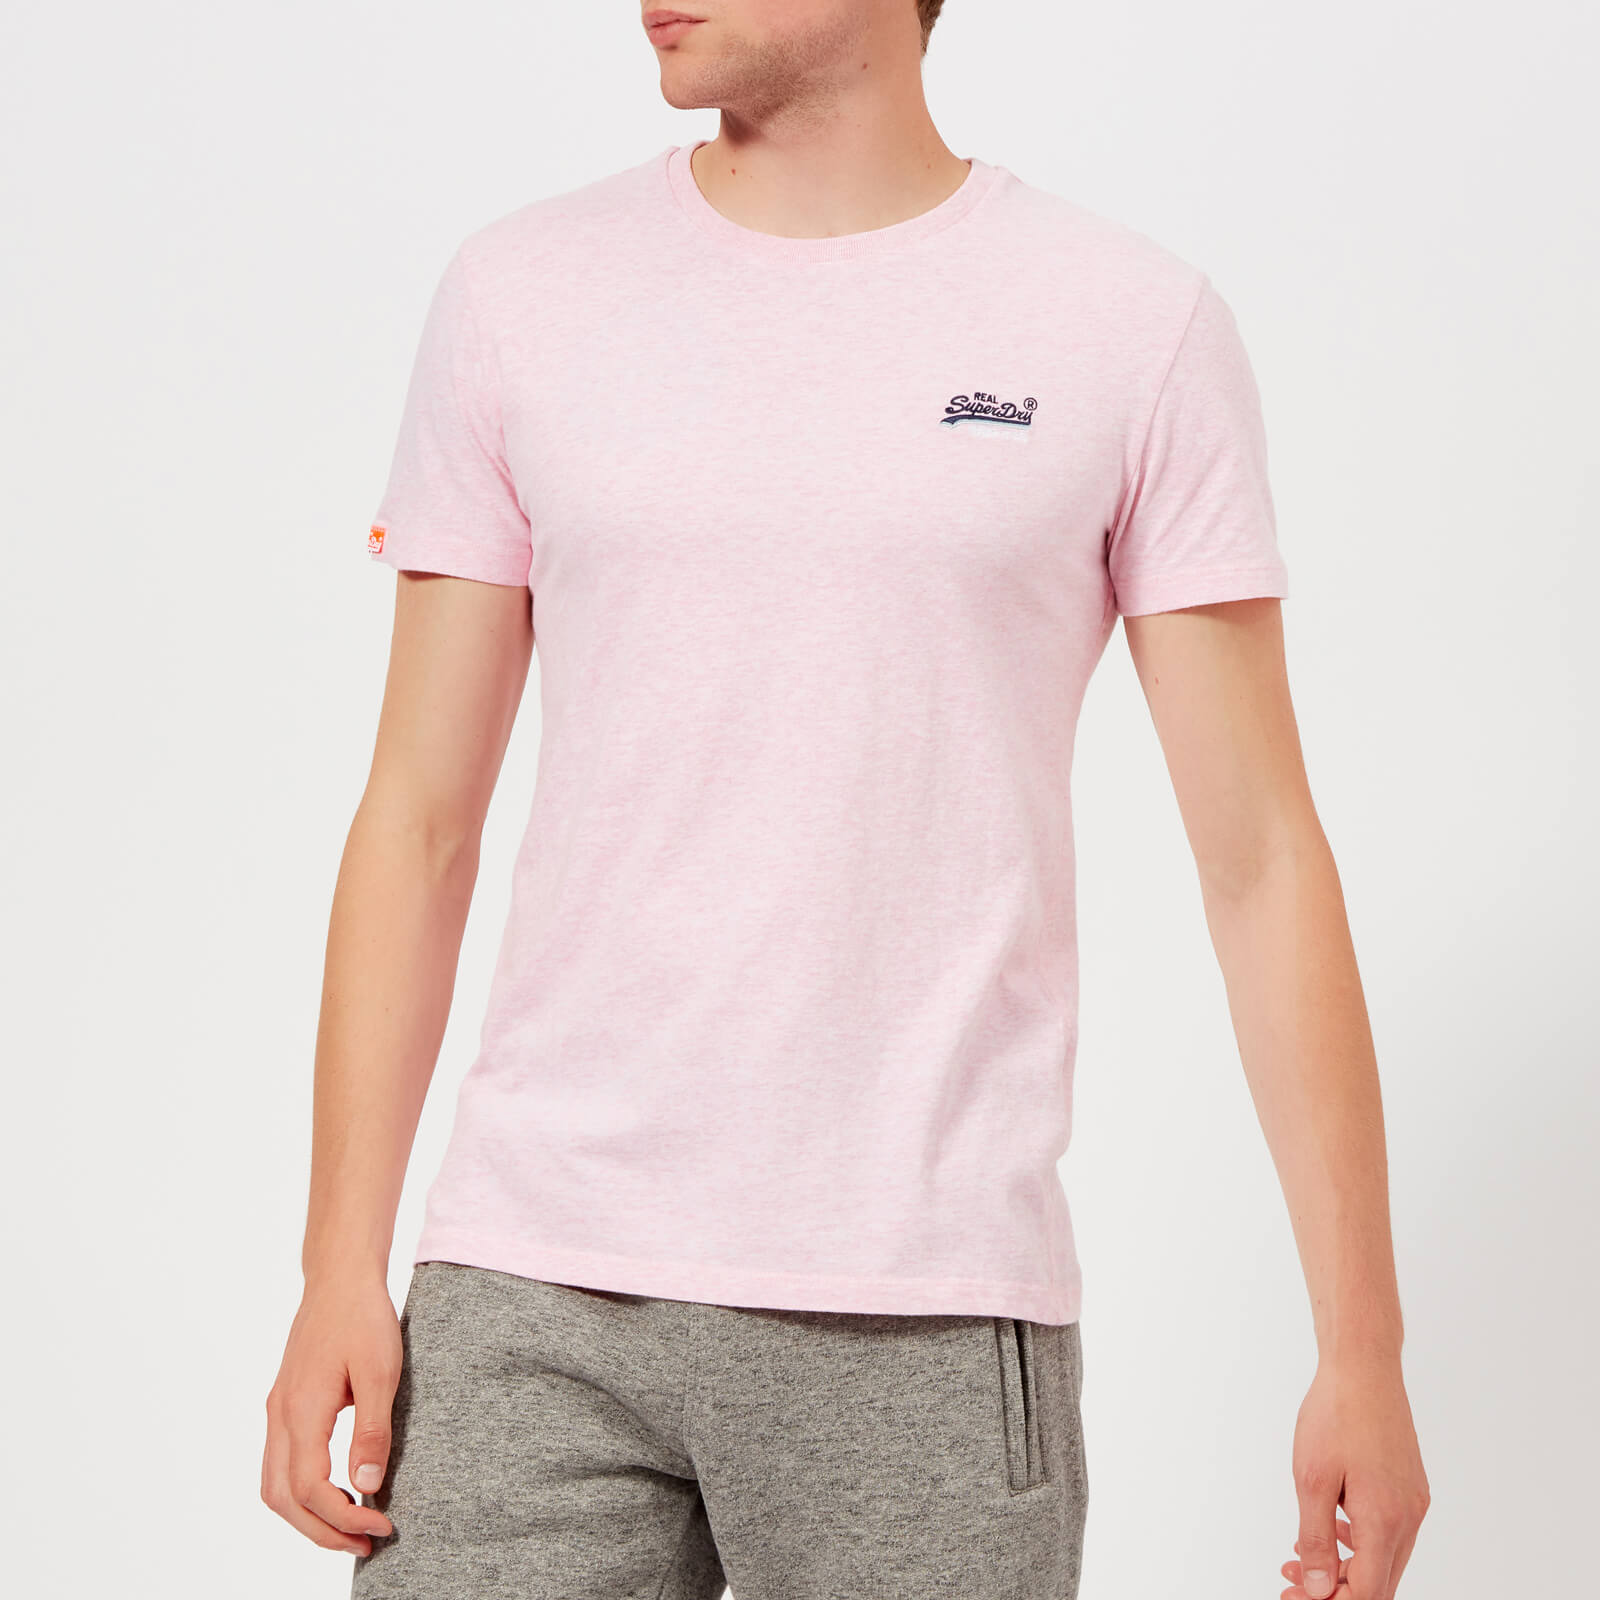 f1062397 Superdry Men's Orange Label Vintage Emb T-Shirt - Pastel Pink Marl Clothing  | TheHut.com